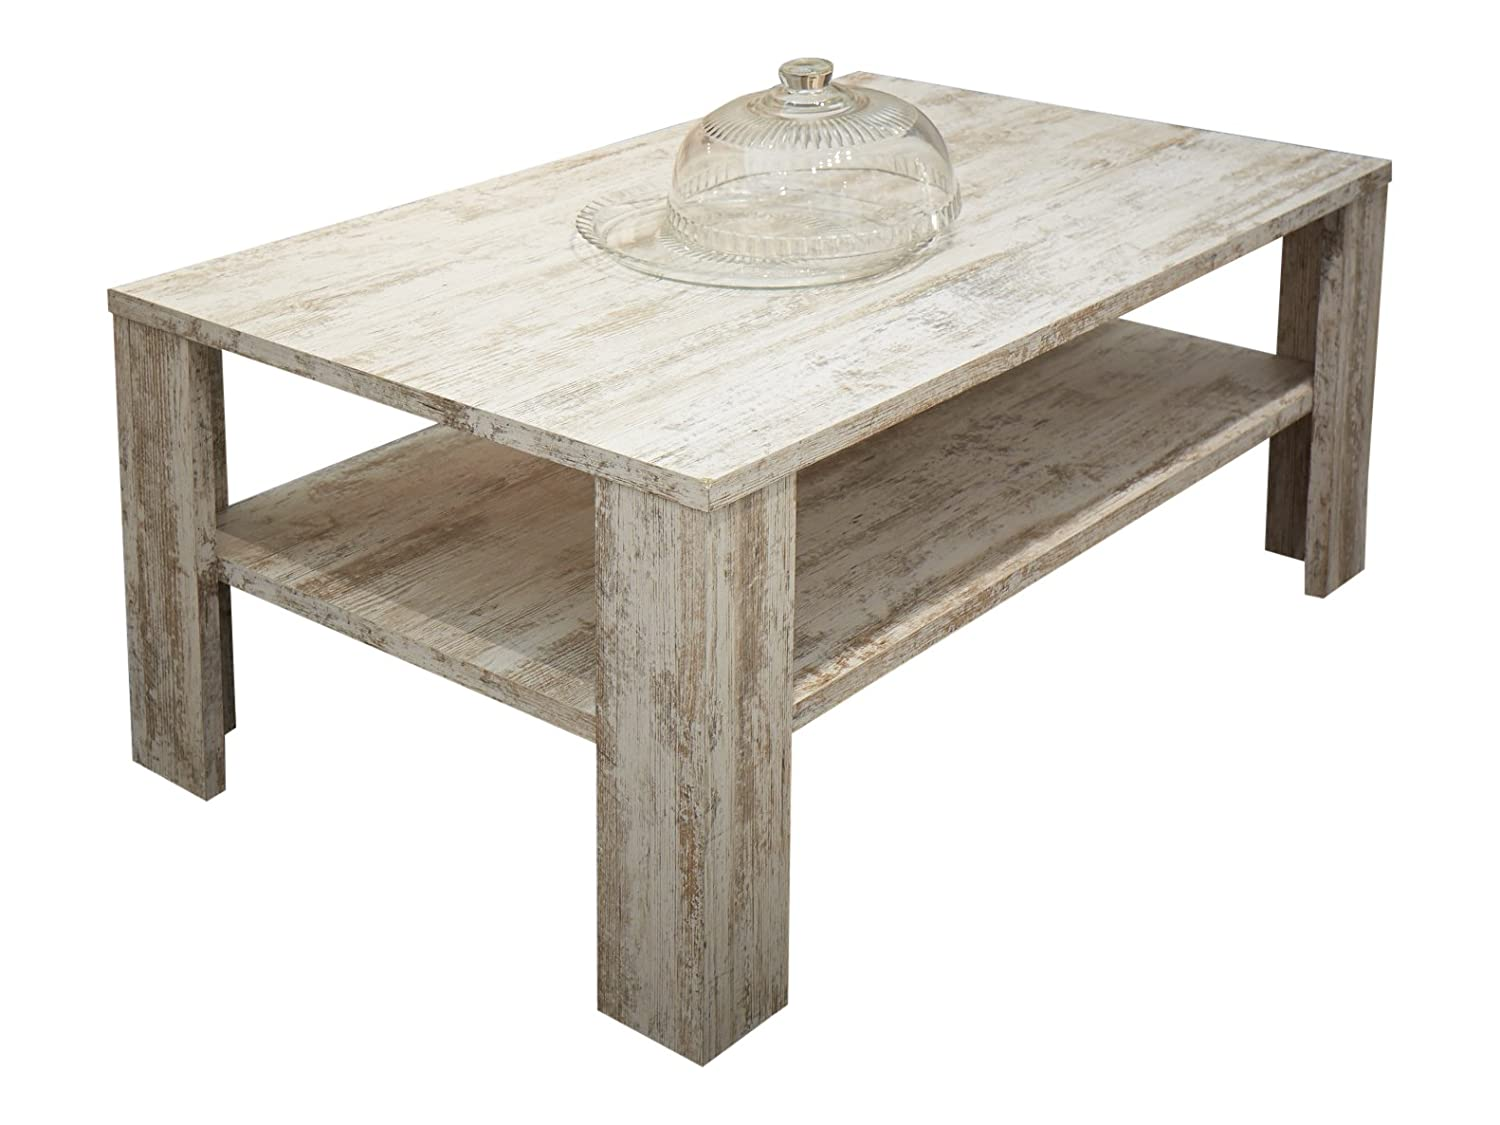 Ehrf Rchtige Table Basse Meuble Tv Id Es De Conception De Table  # Ensemble Meuble Tv Table Basse Bois